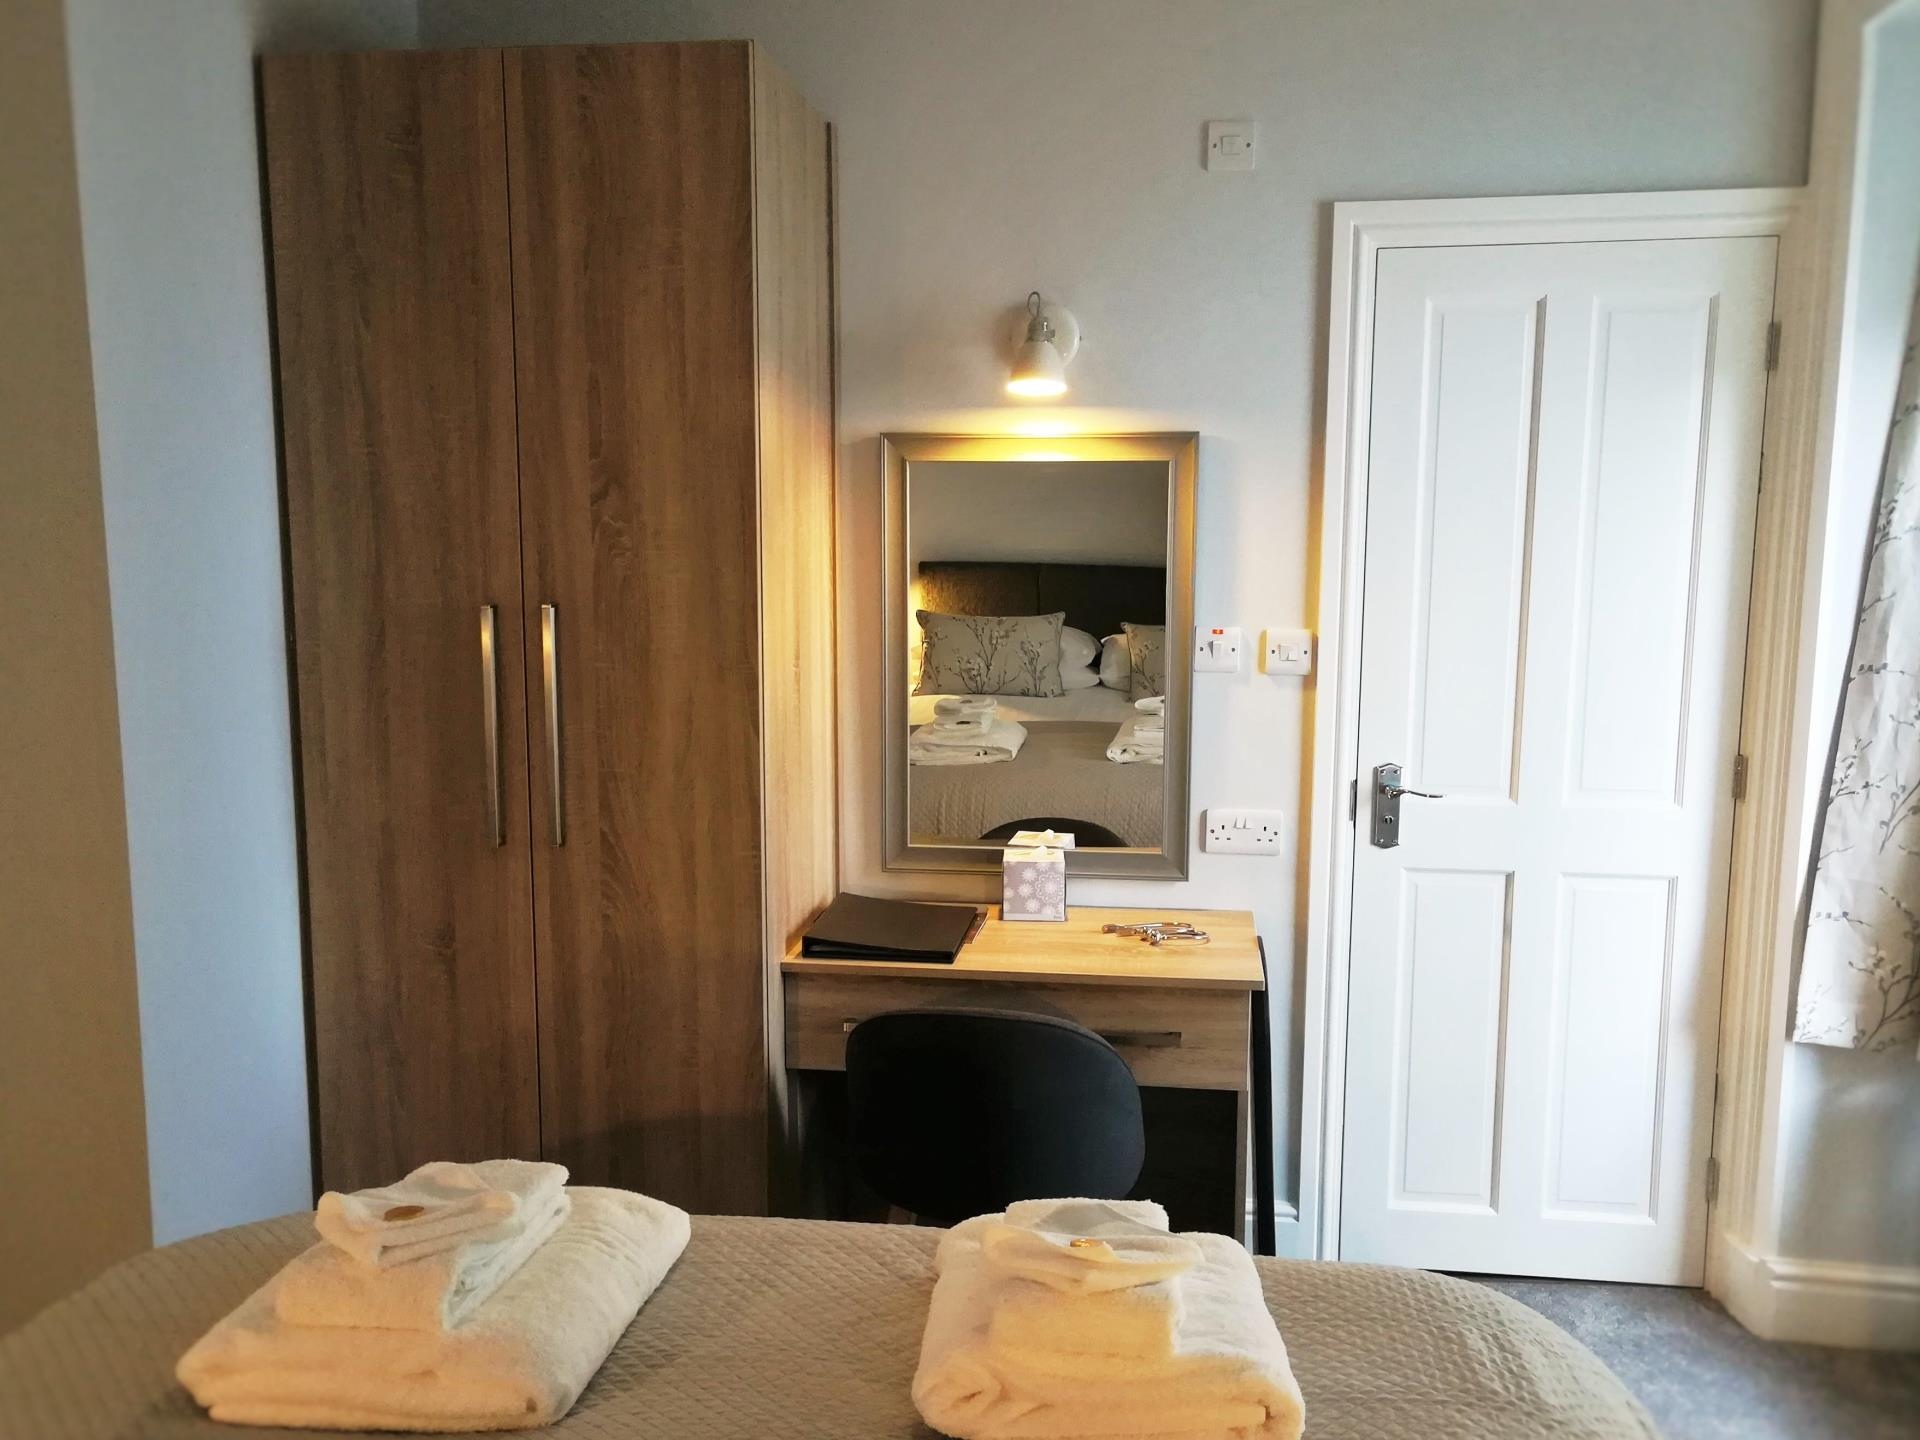 Room 3 - Dressing area